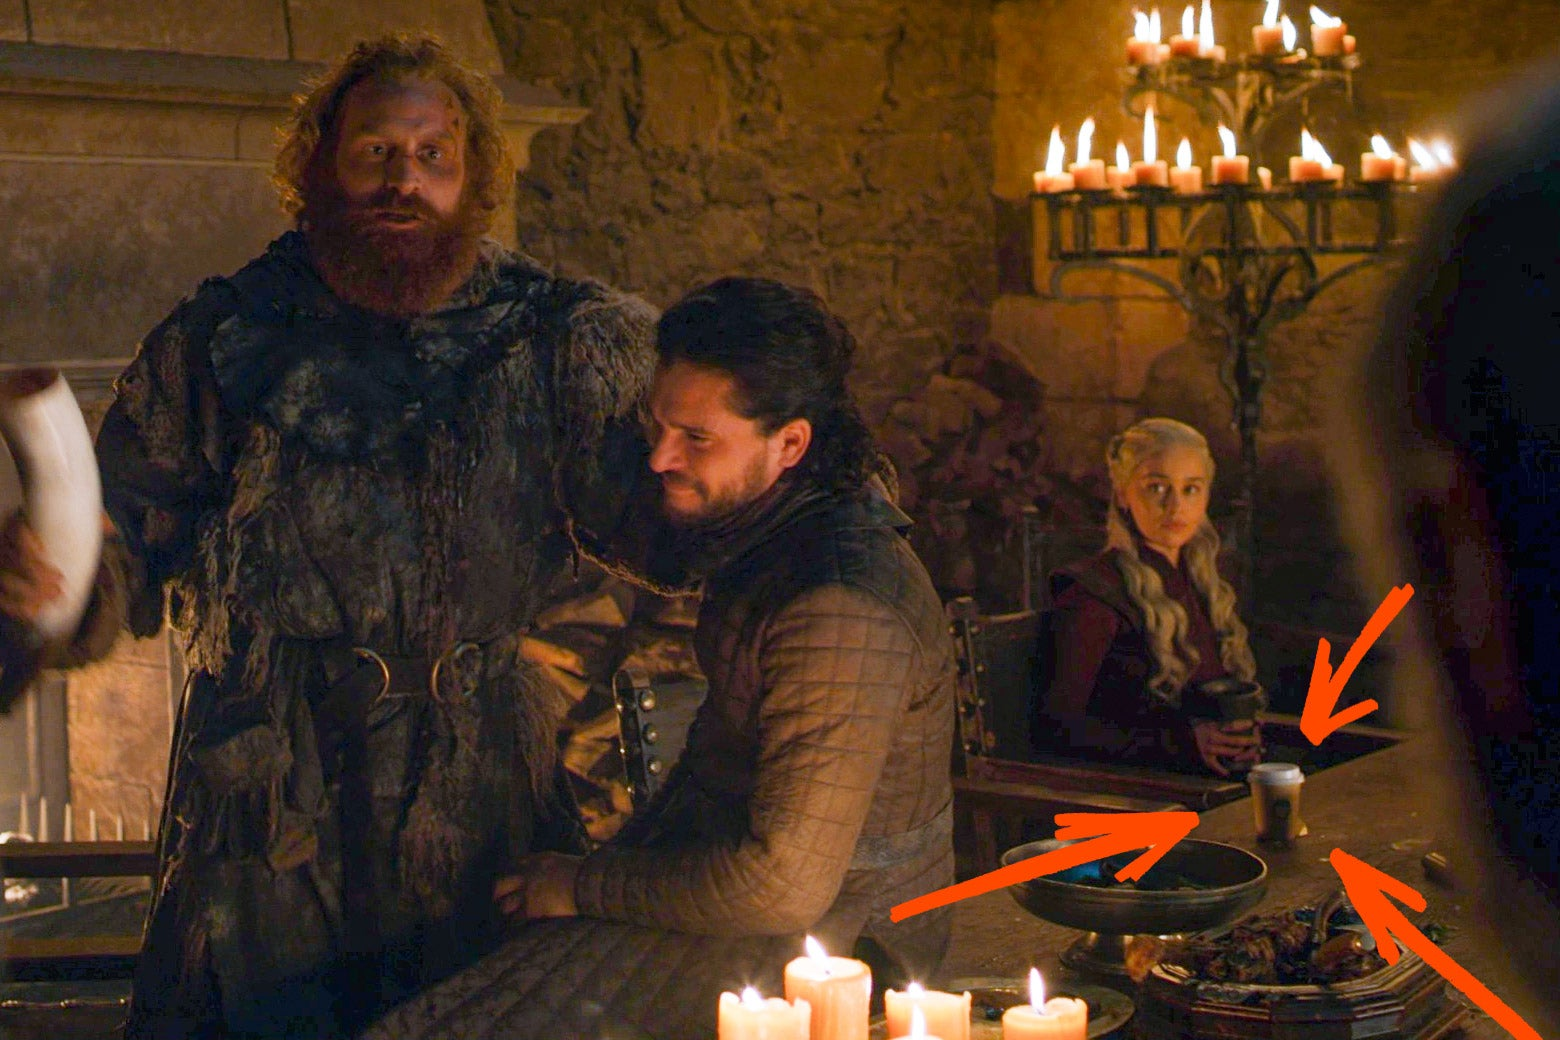 The same still from Game of Thrones Season 8 Episode 4, with red arrows pointing out the disposable coffee cup.